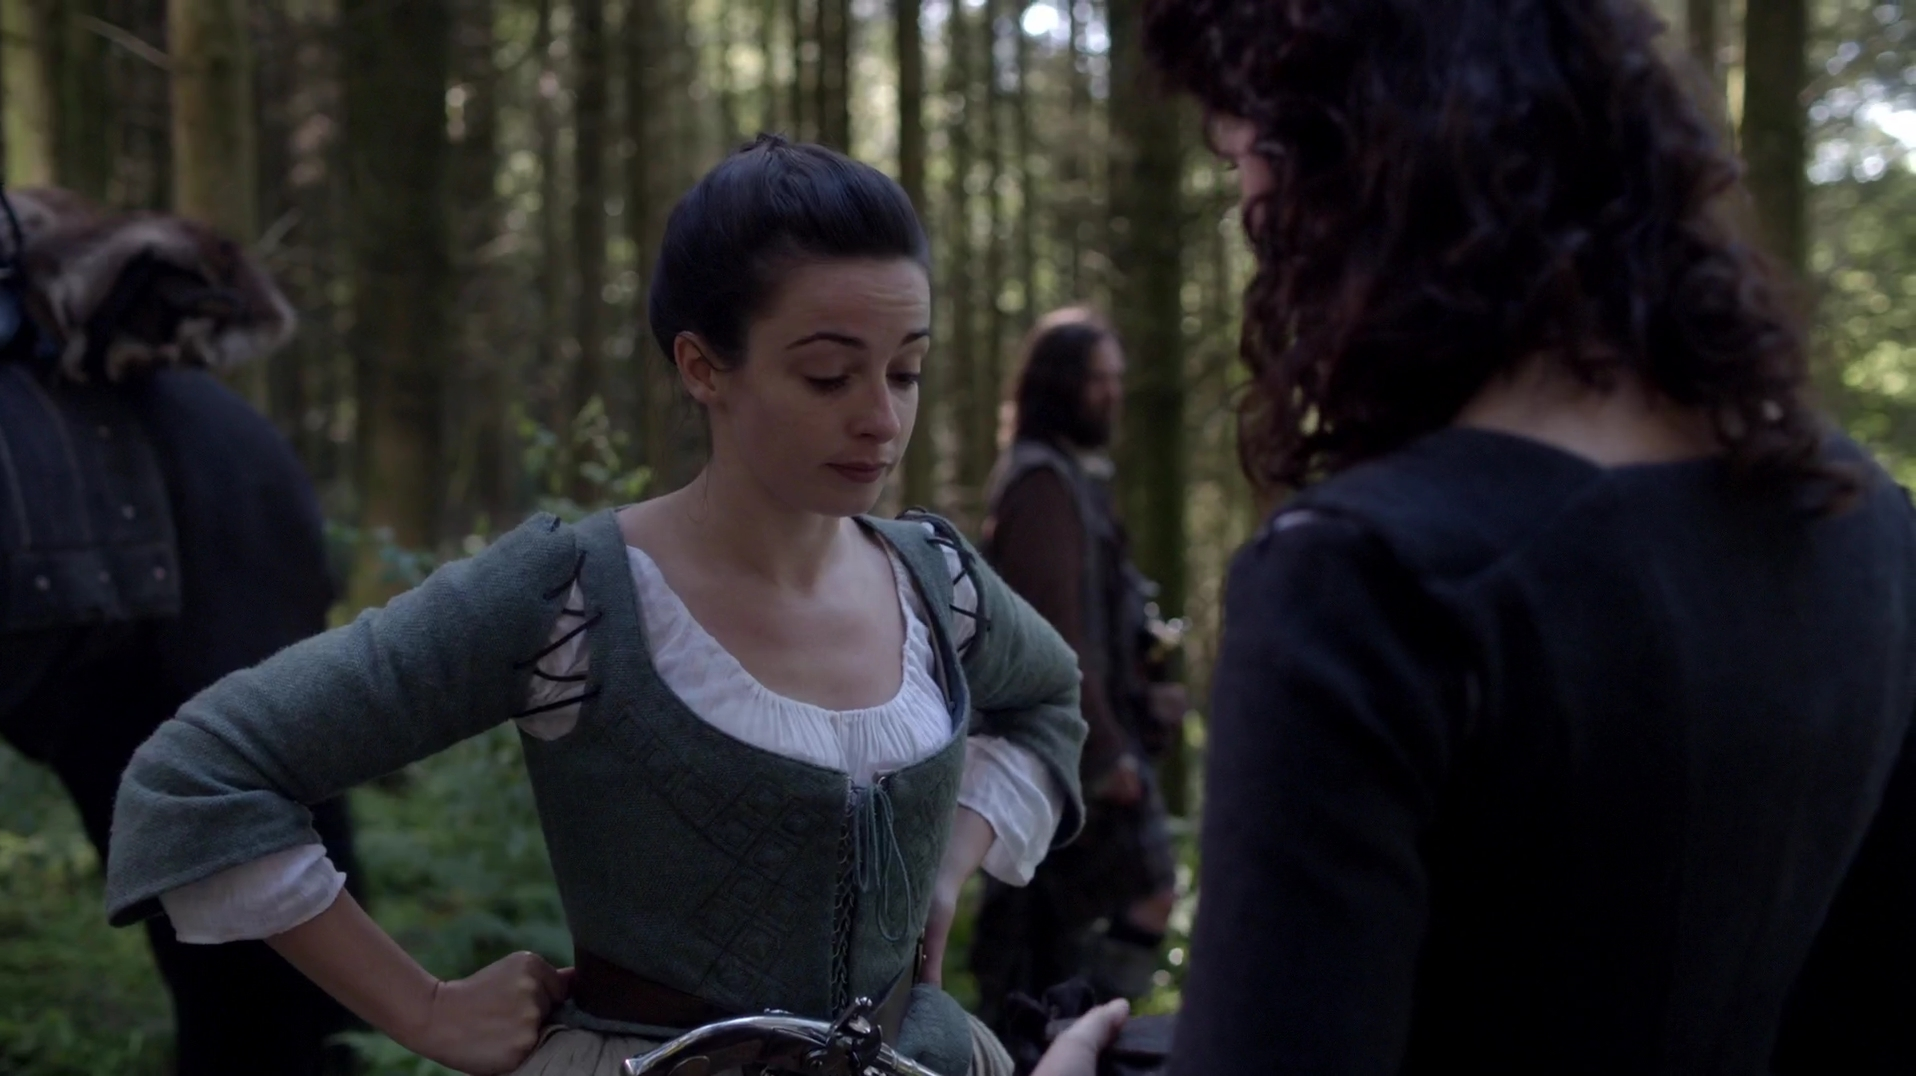 Laura donnelly nude outlander s01e14 10